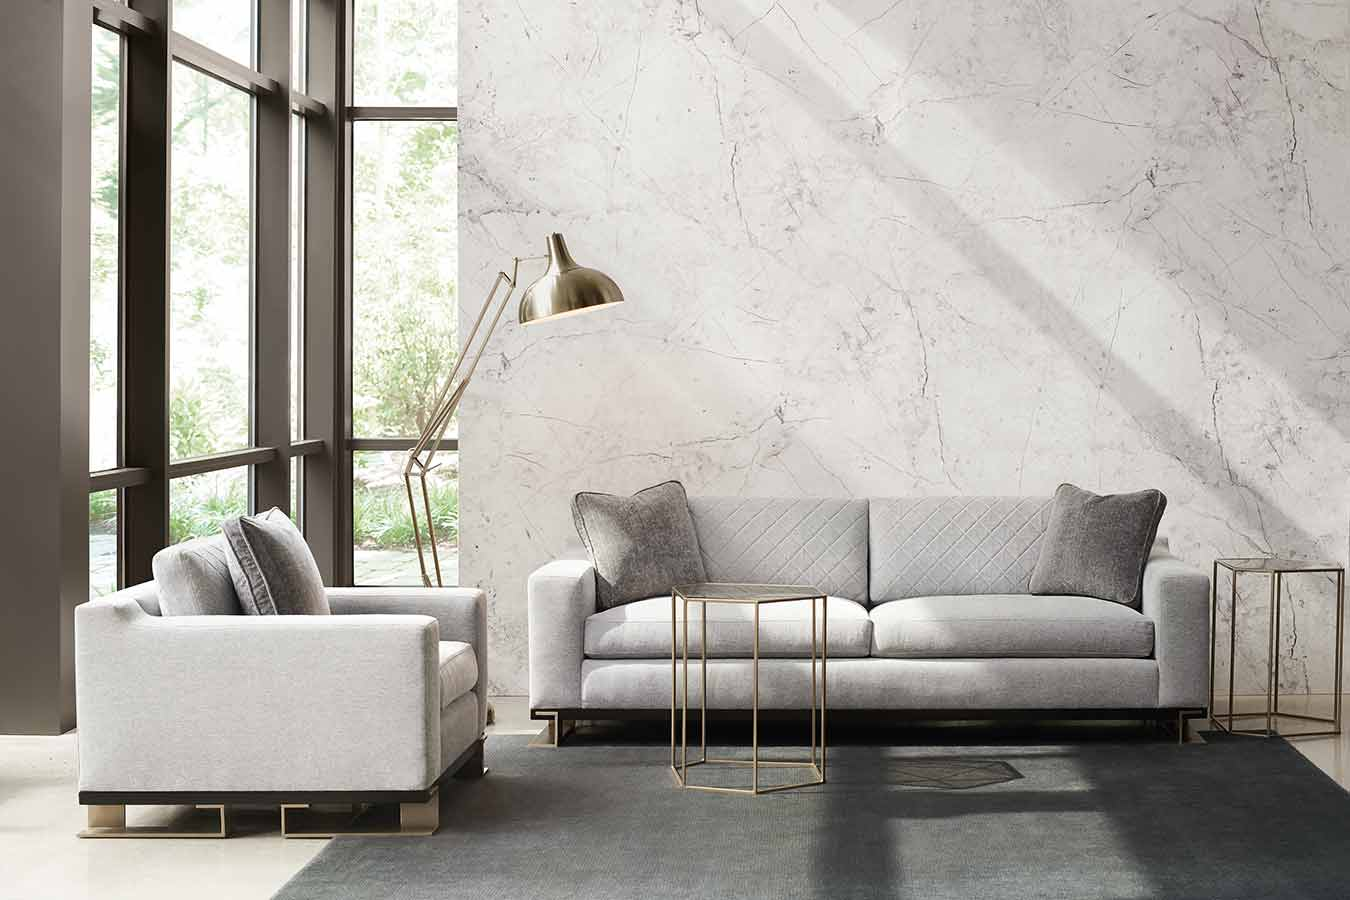 Modern Edge Collection Living Areas | Contemporary Modern Luxury Exclusive Designer Handcrafted Furniture | Sandton Johannesburg